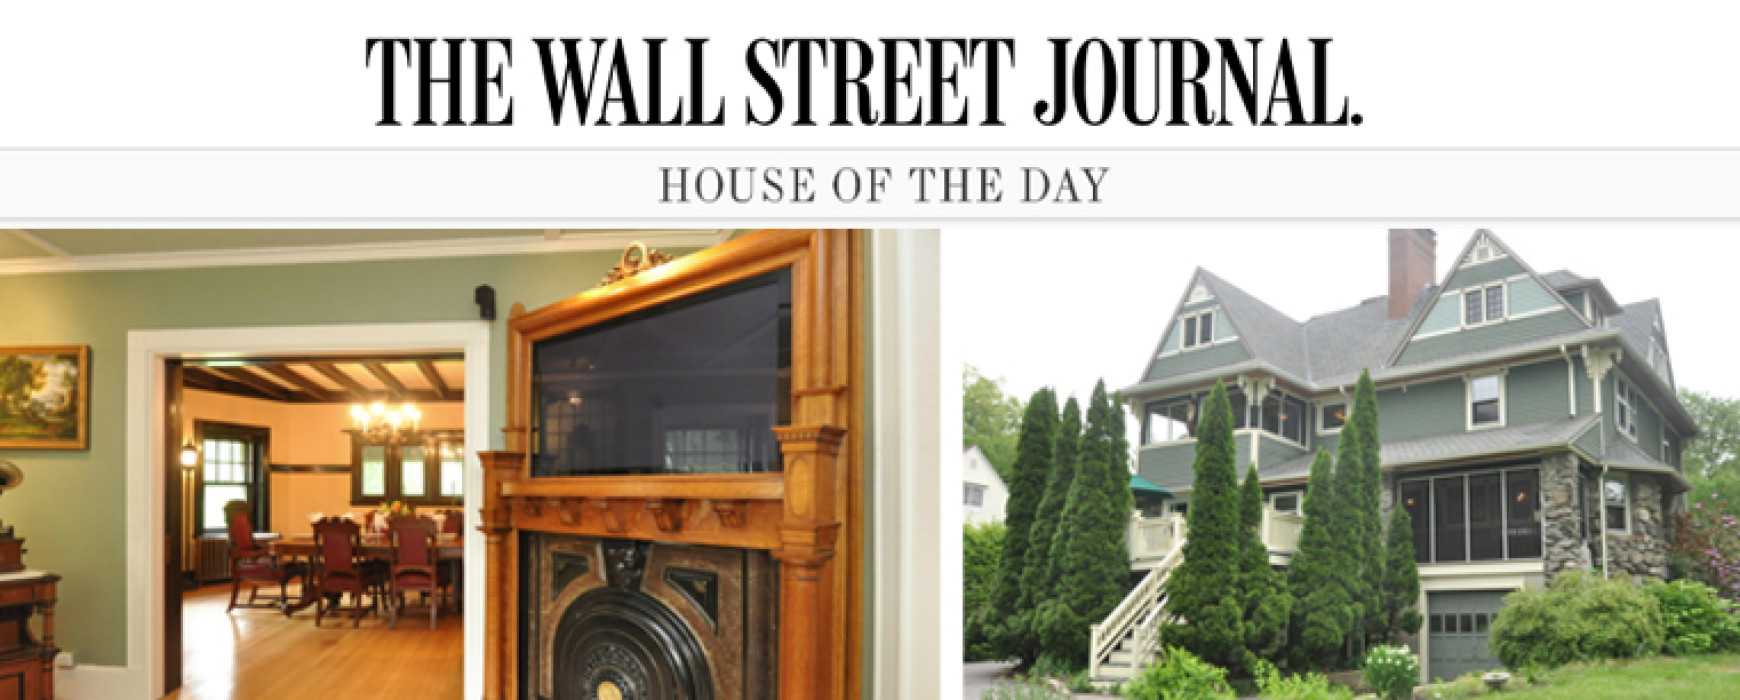 THE WALL STREET JOURNAL. : A Victorian House with Steampunk Style